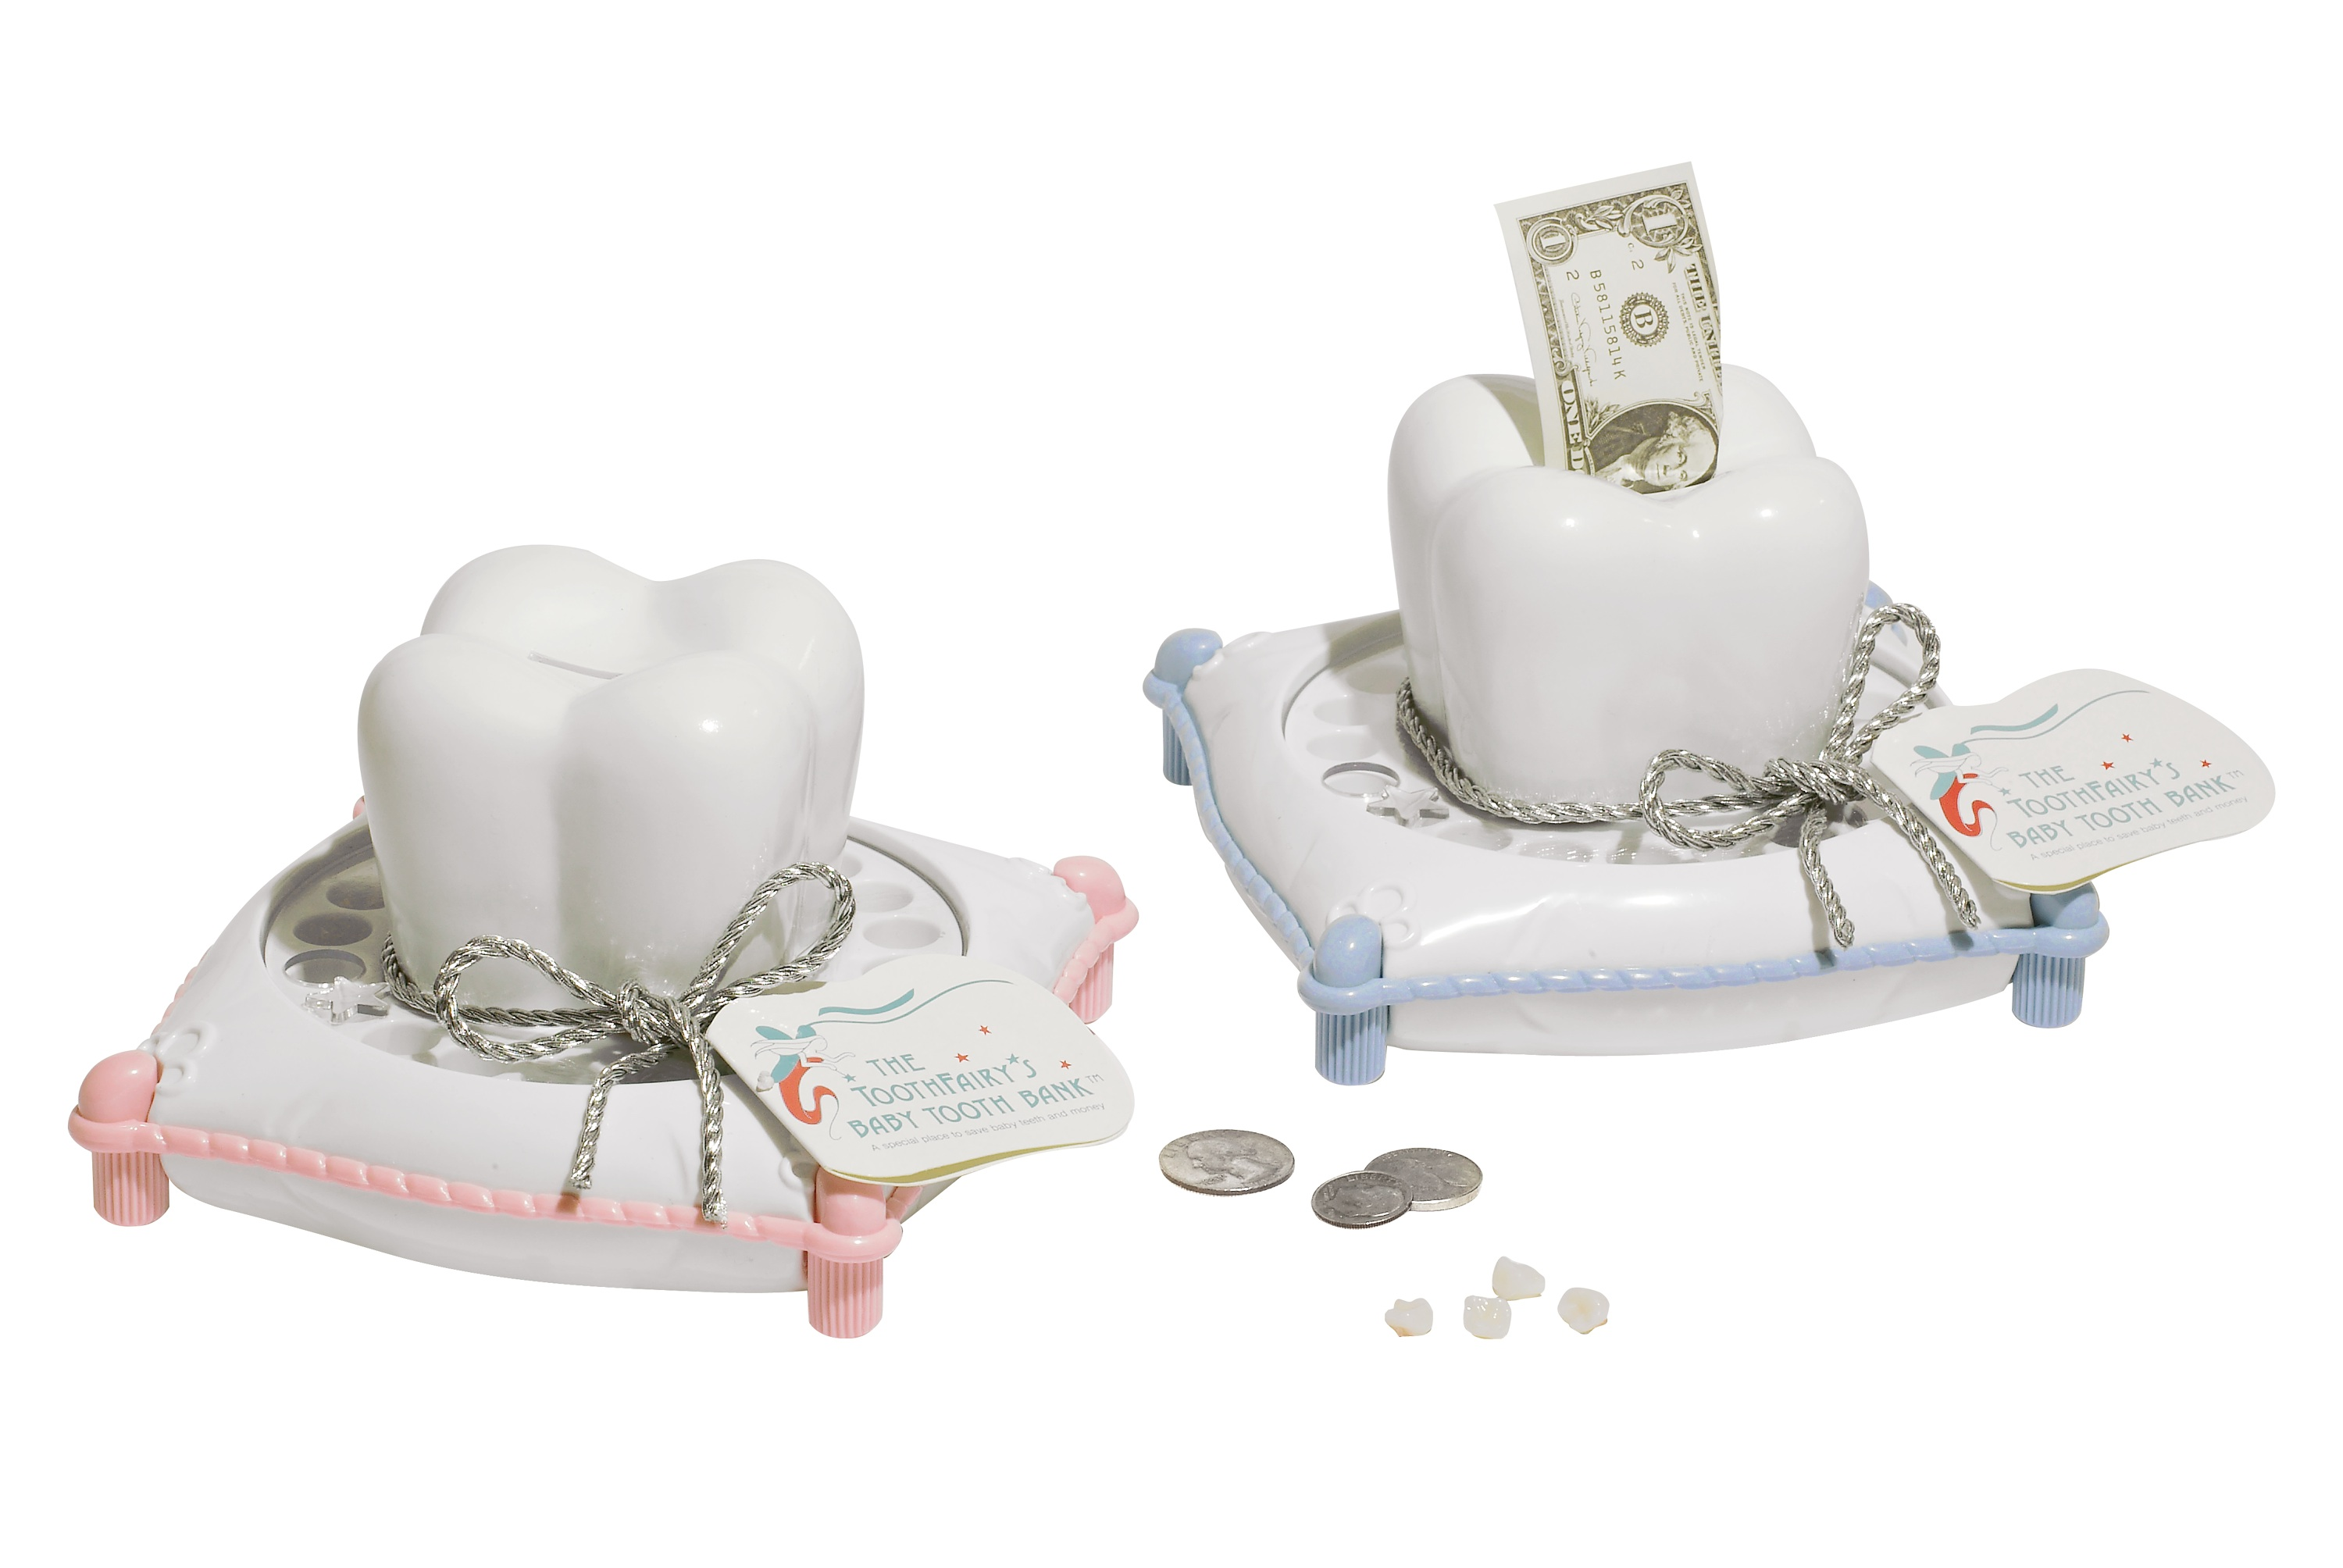 TOOTHFAIRY*S BABY TOOTH BANK